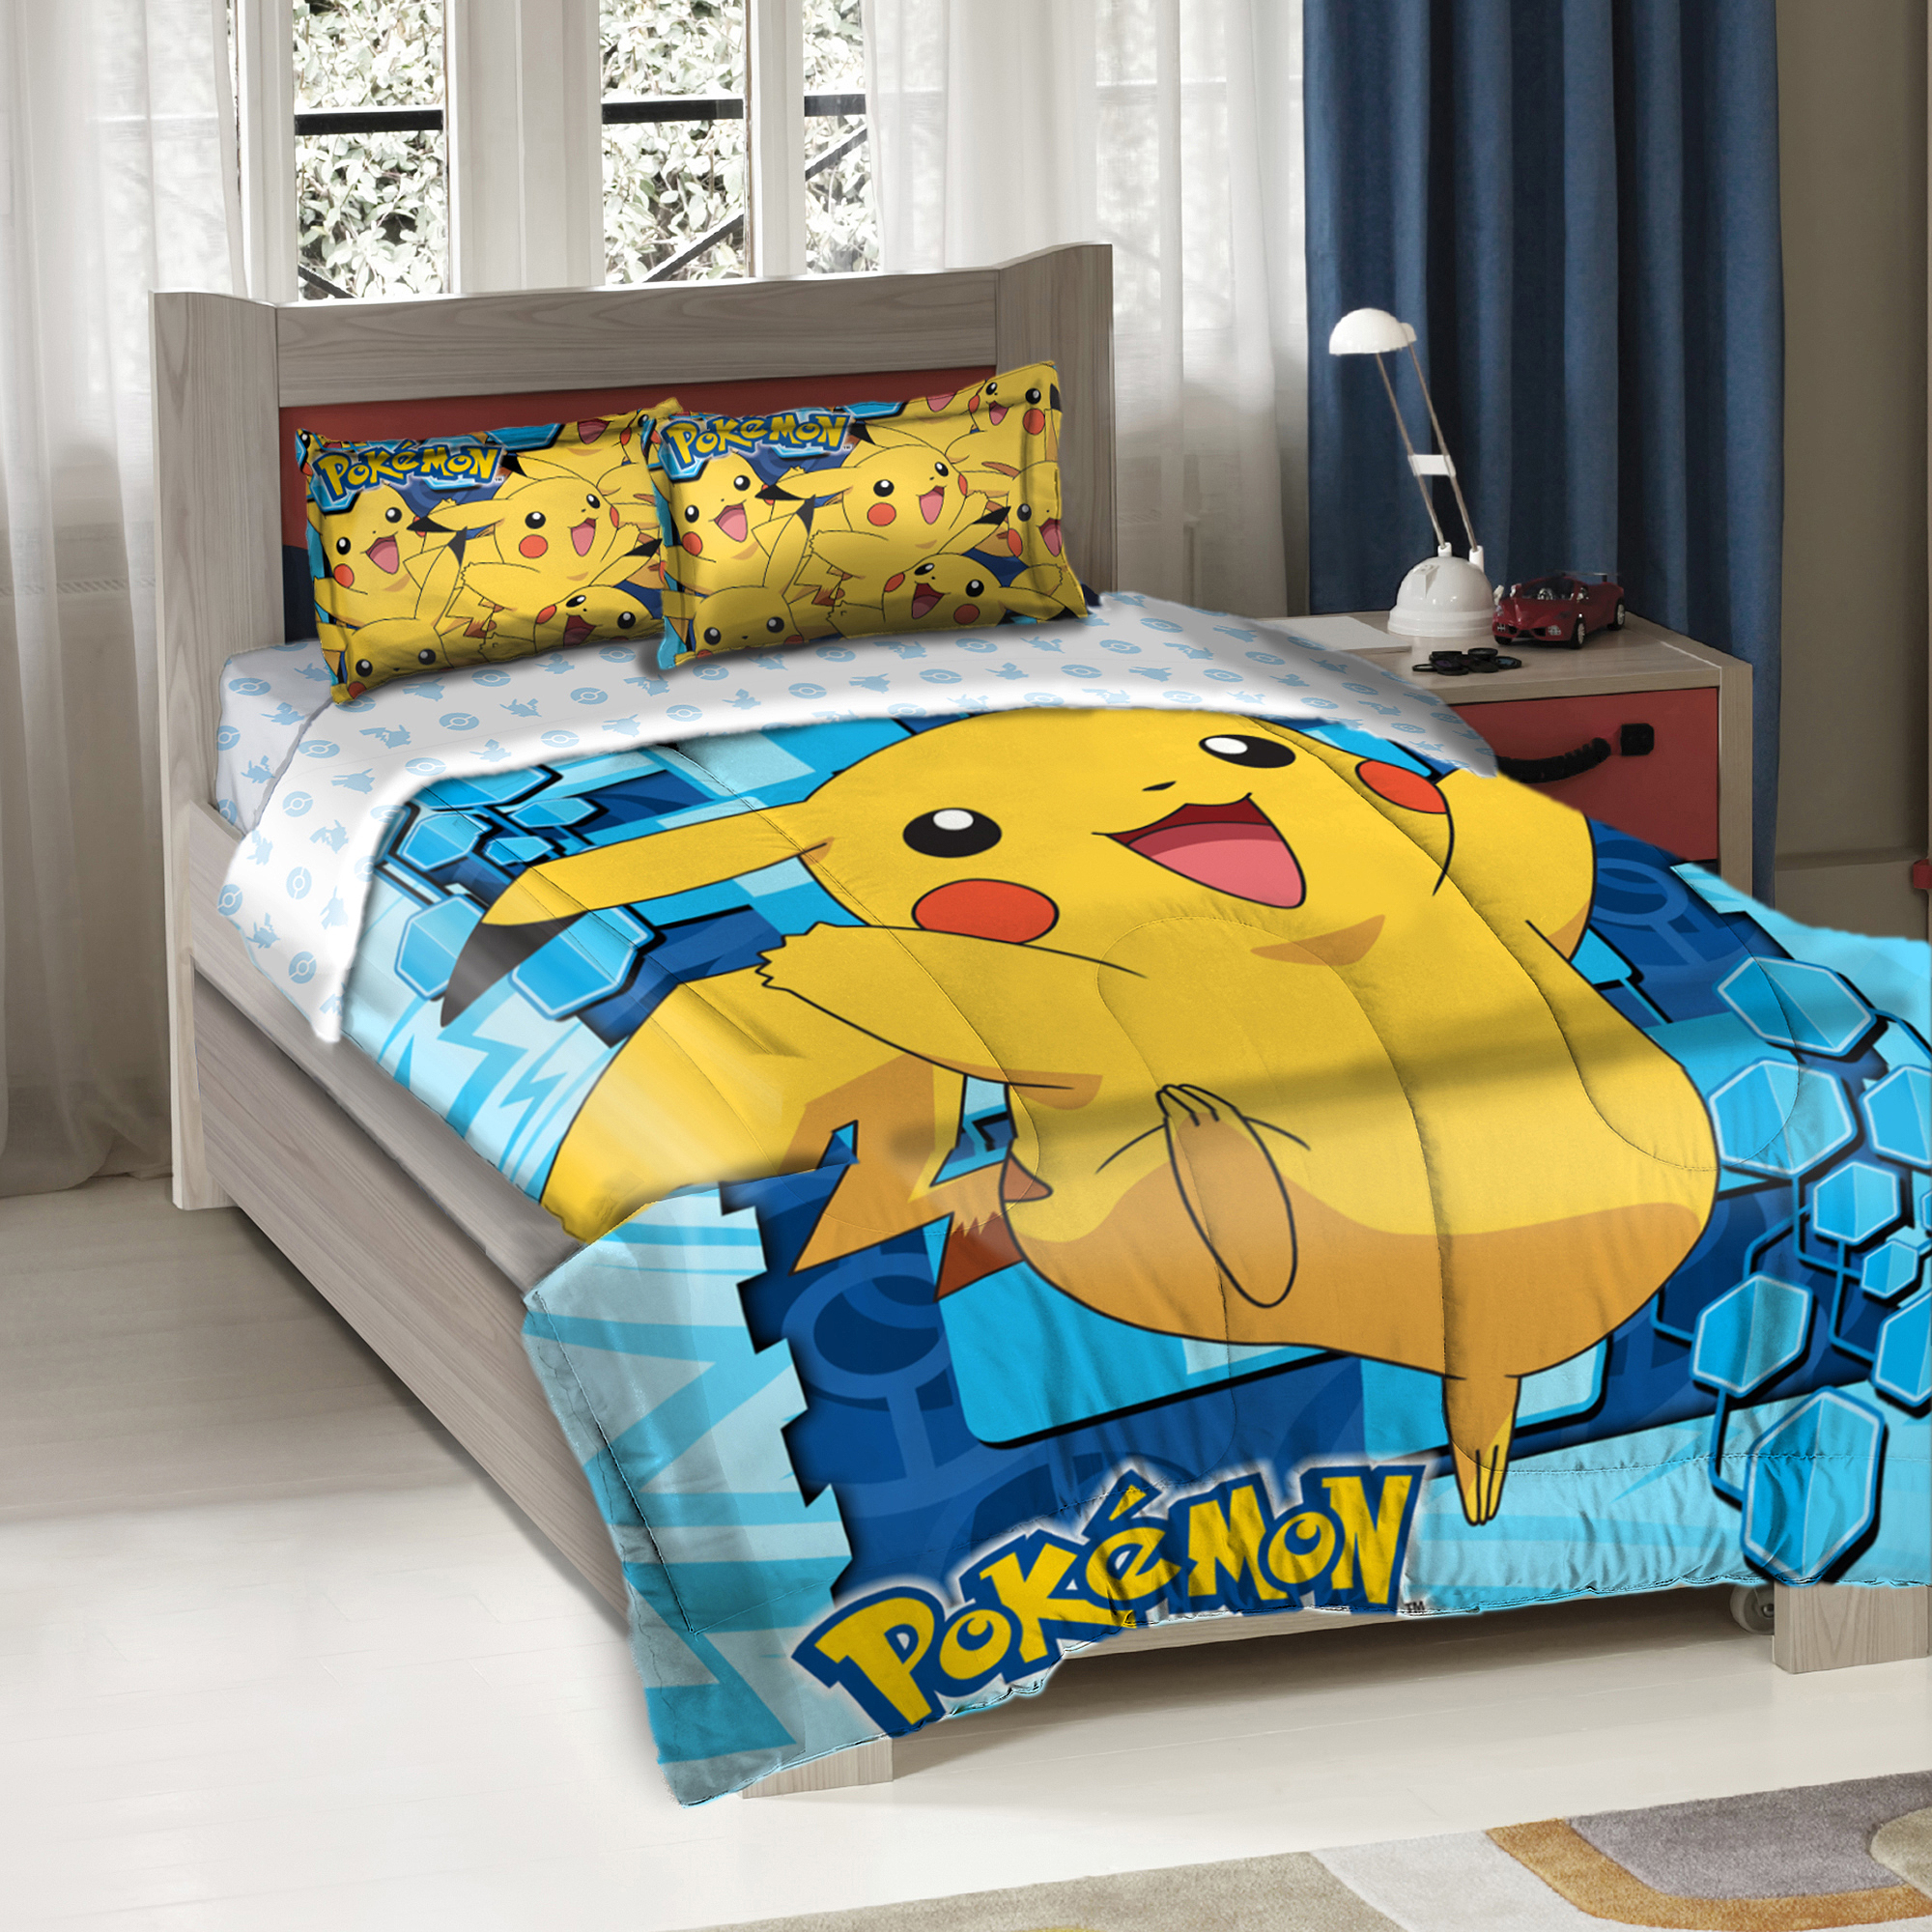 Bedding Sets Walmart